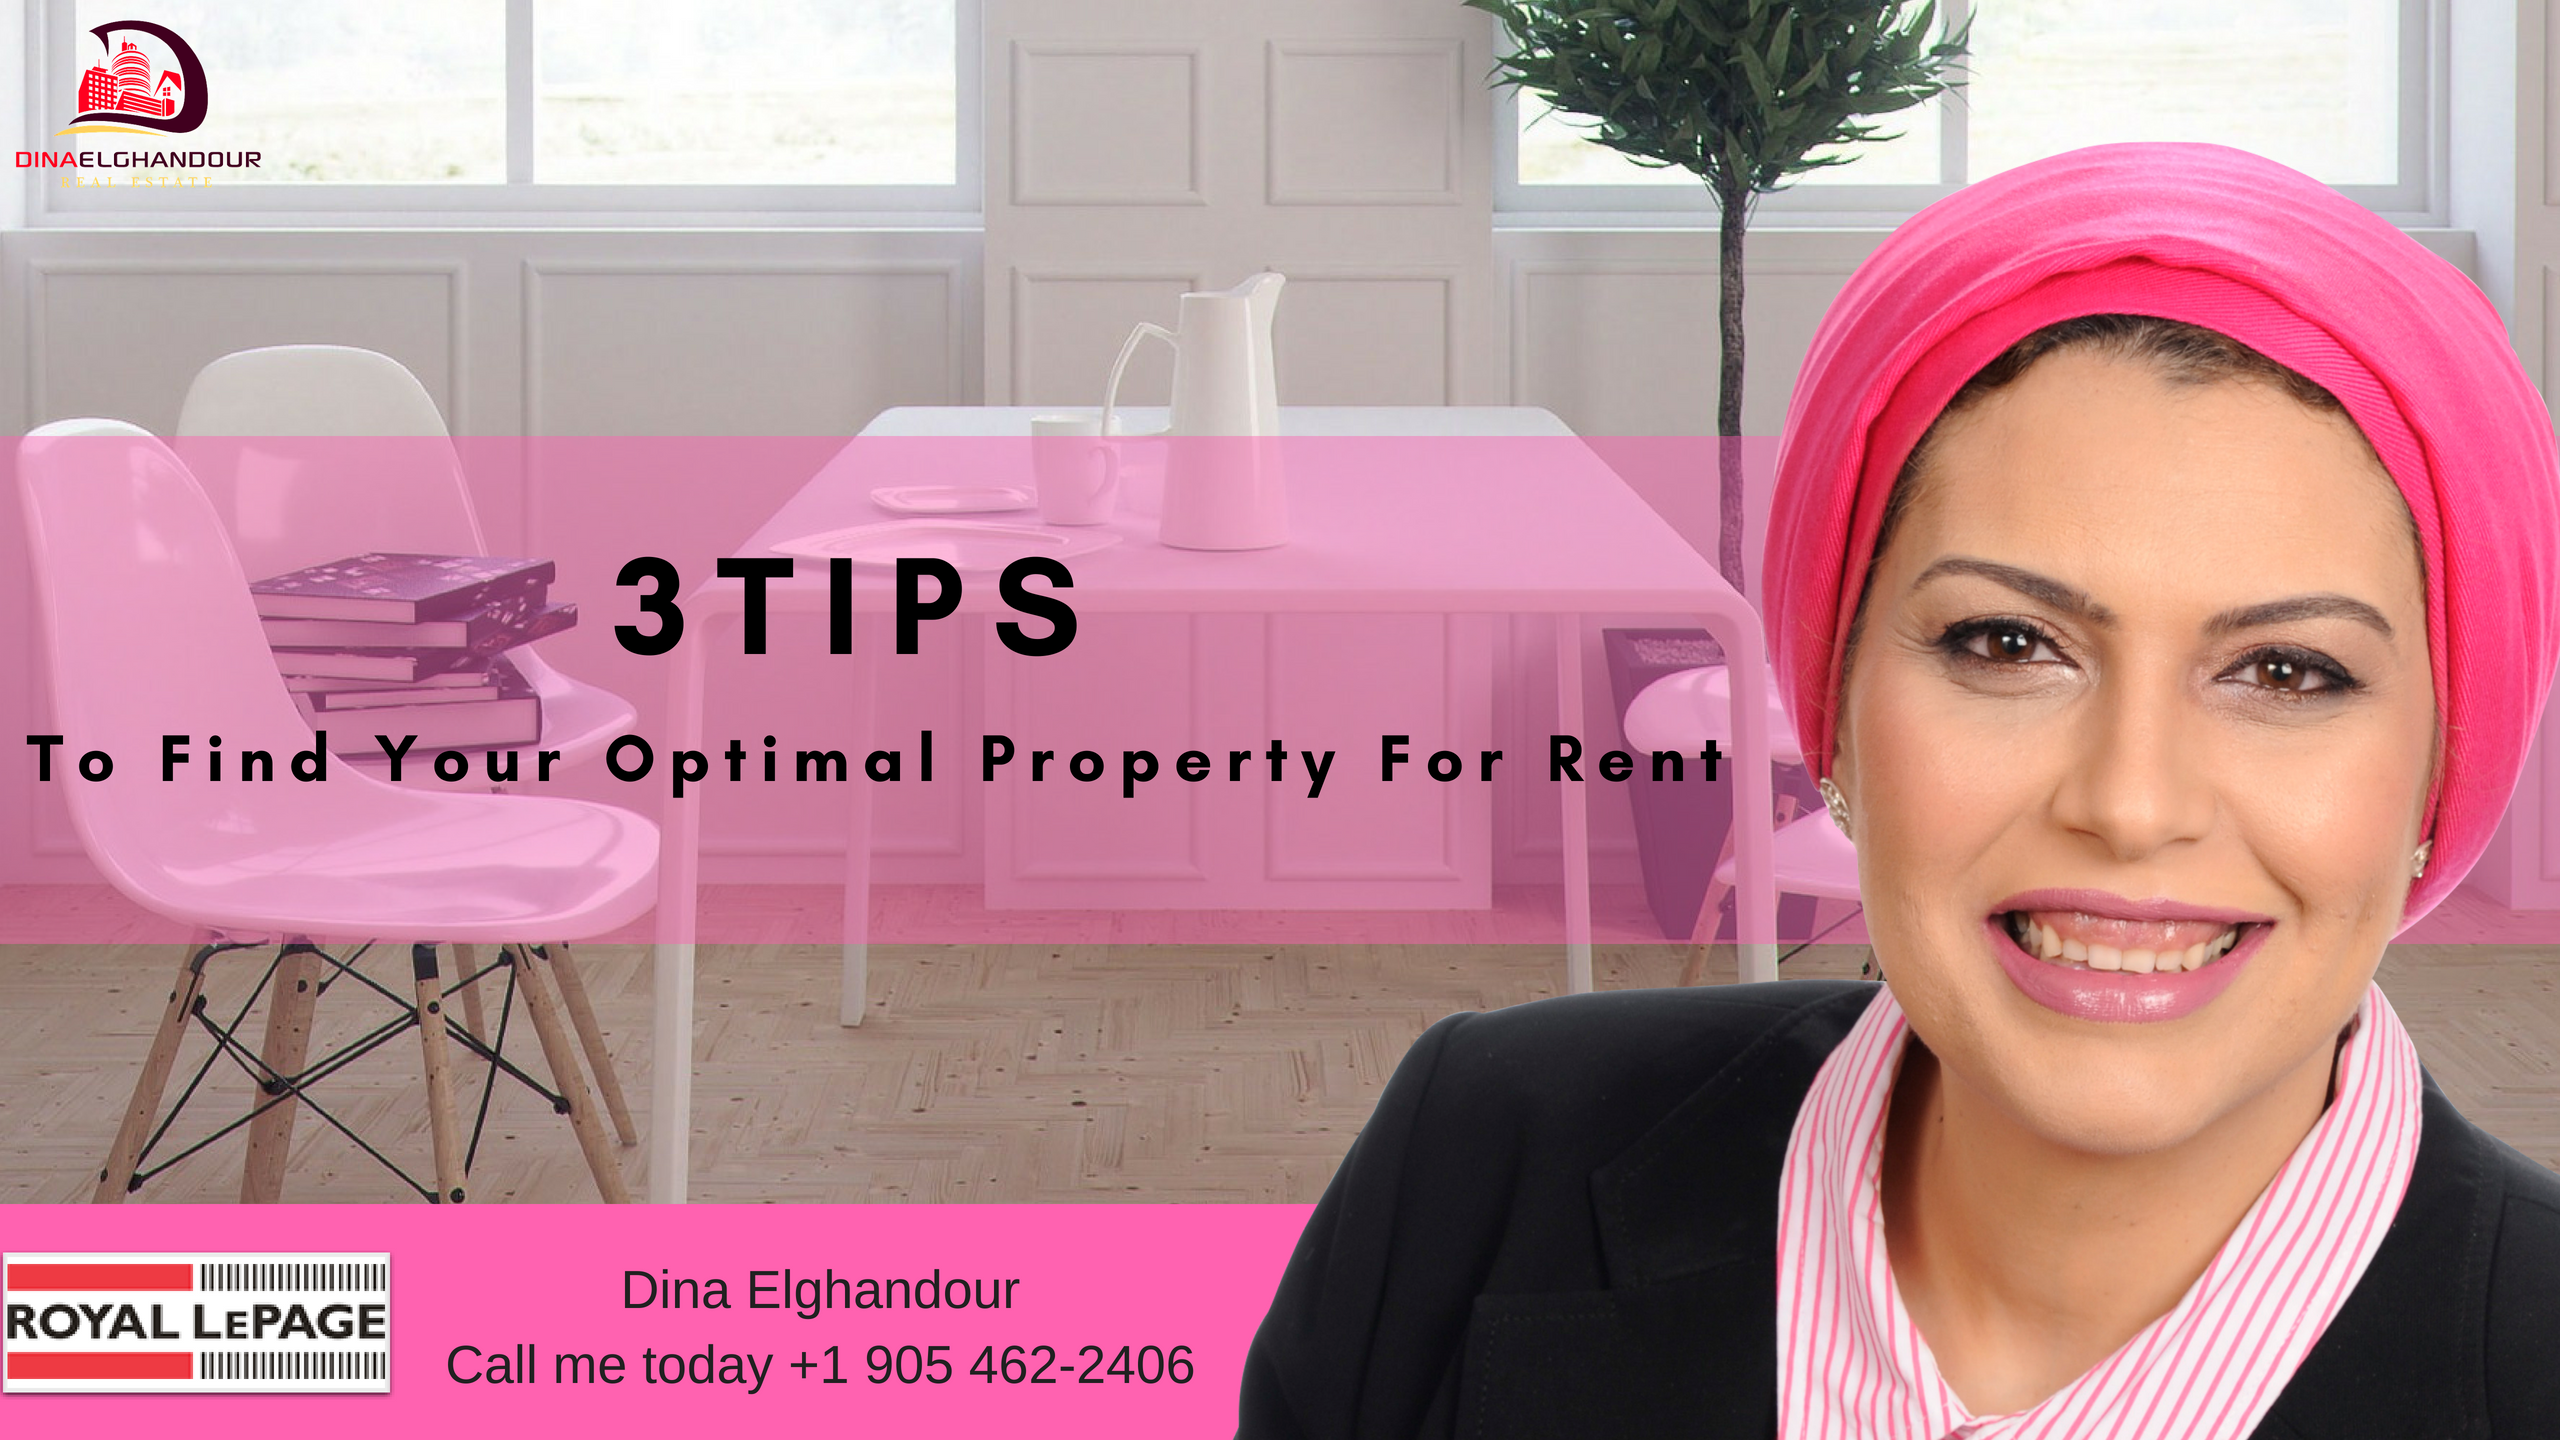 How To Find Your Optimal Property For Rent